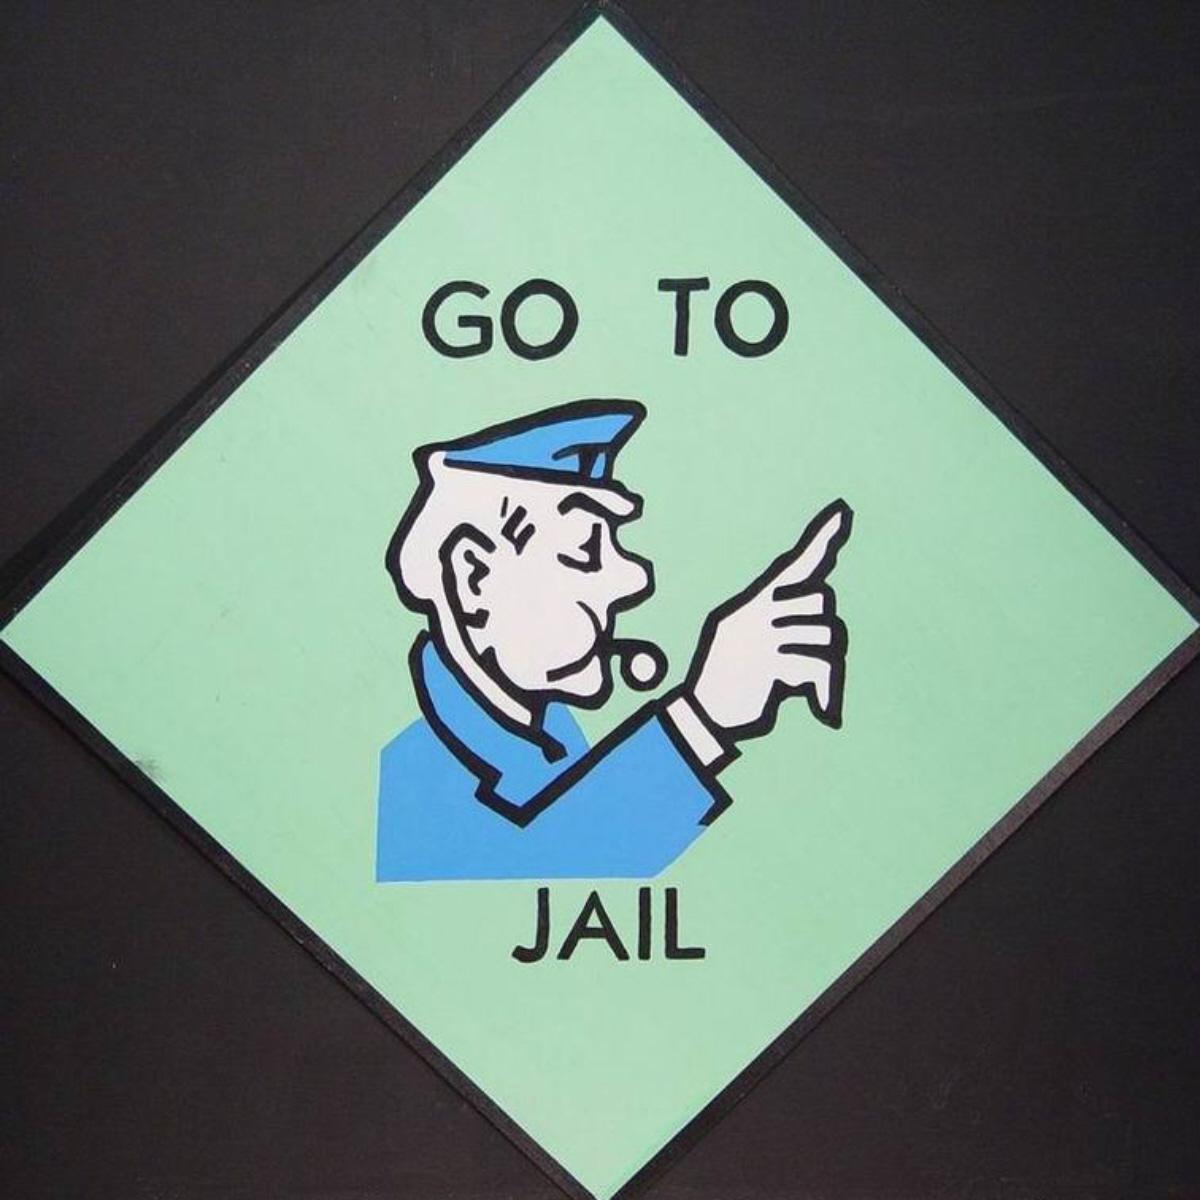 Go to jail clipart image transparent Myth #12: The uninsured will go to jail | Third Way - Clip Art Library image transparent